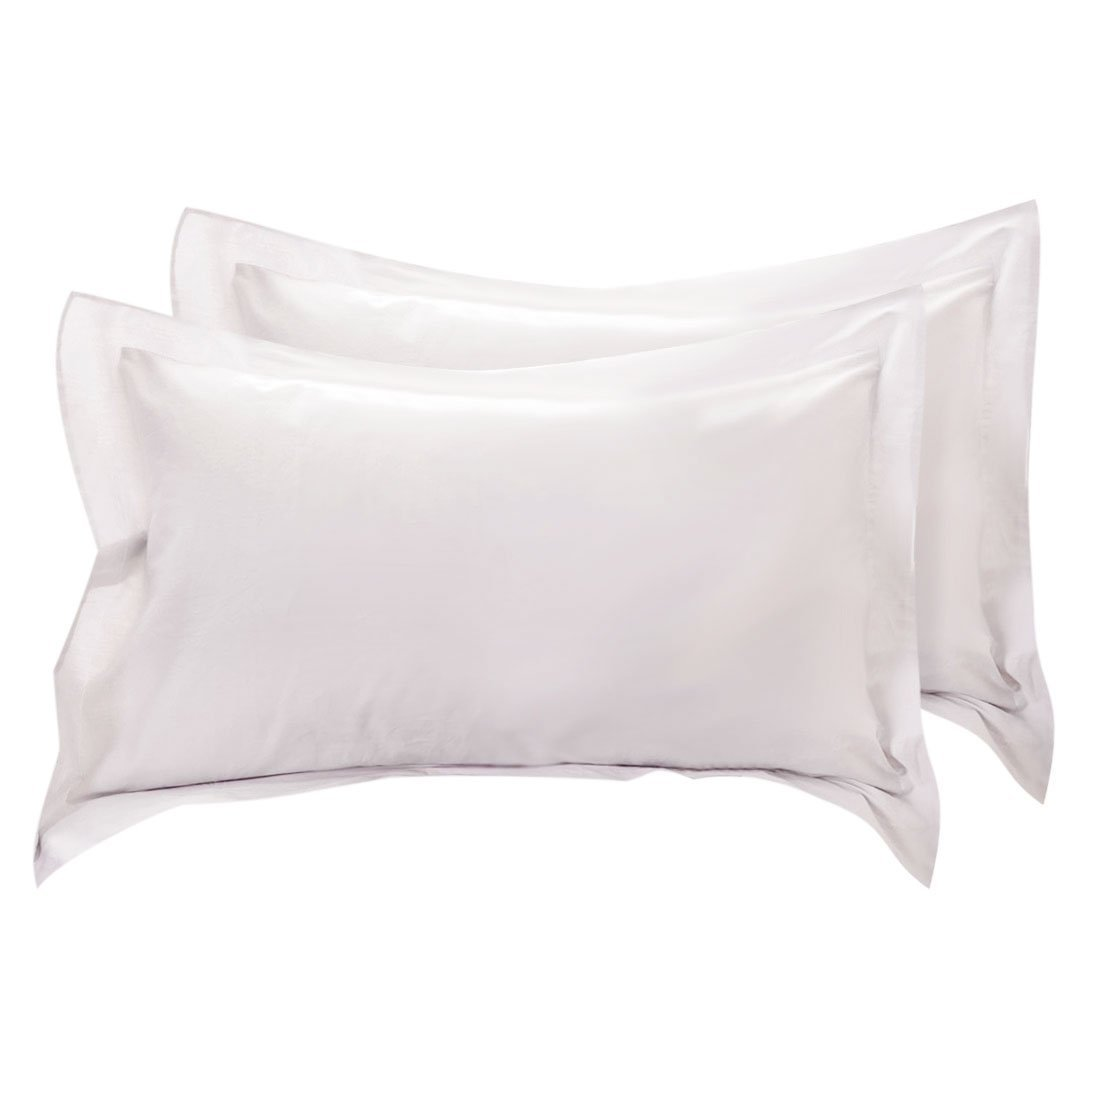 Greatest A's Easy Fit / Adjustable,Luxury Cotton Hotel & Spa Pillow Shams-with Flange[King/Cal-King, Silver Grey]